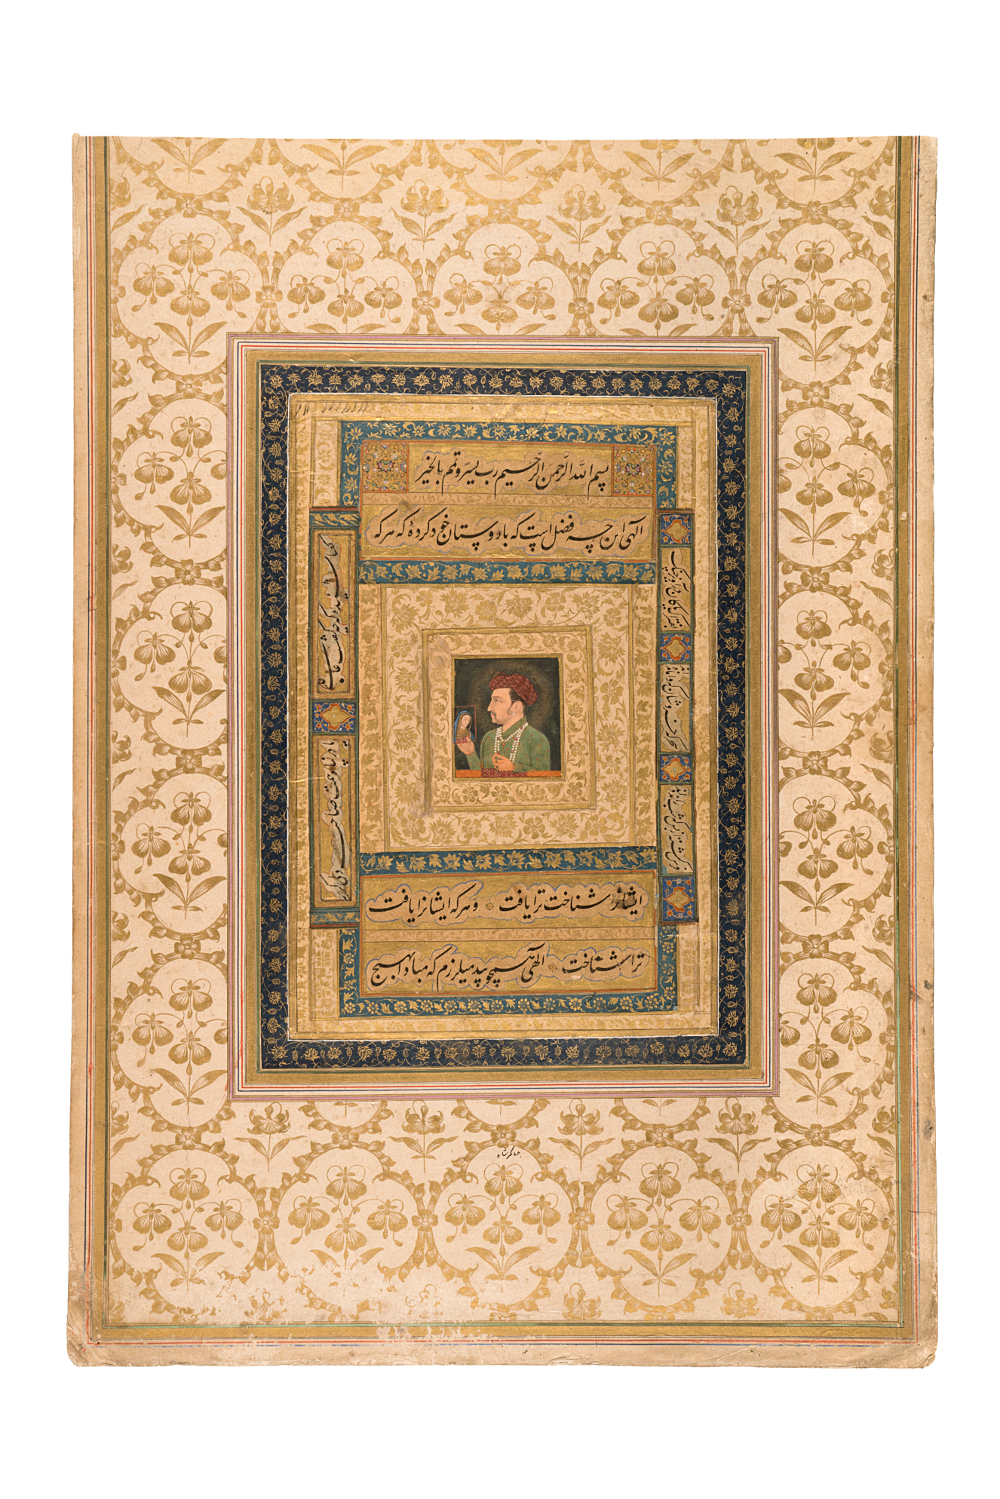 Jahangir holding a portrait of the Virgin Mary - Opaque watercolour and gold on paperAbout AD 1620Probably Agra, Uttar Pradesh, IndiaNational Museum, New Delhi This portrait of the Mughal Emperor Jahangir (1569–1627), shows him holding an icon of the Virgin Mary, while a golden halo of light radiates around him. Poetic inscriptions, around the side of the painting, ask for strength and protection for Jahangir to face the surrounding darkness and rise to the challenges of kingship. Maryam (the Virgin Mary) occupies a prominent place among the women in the Qur'an and became an epithet for Mughal queens.